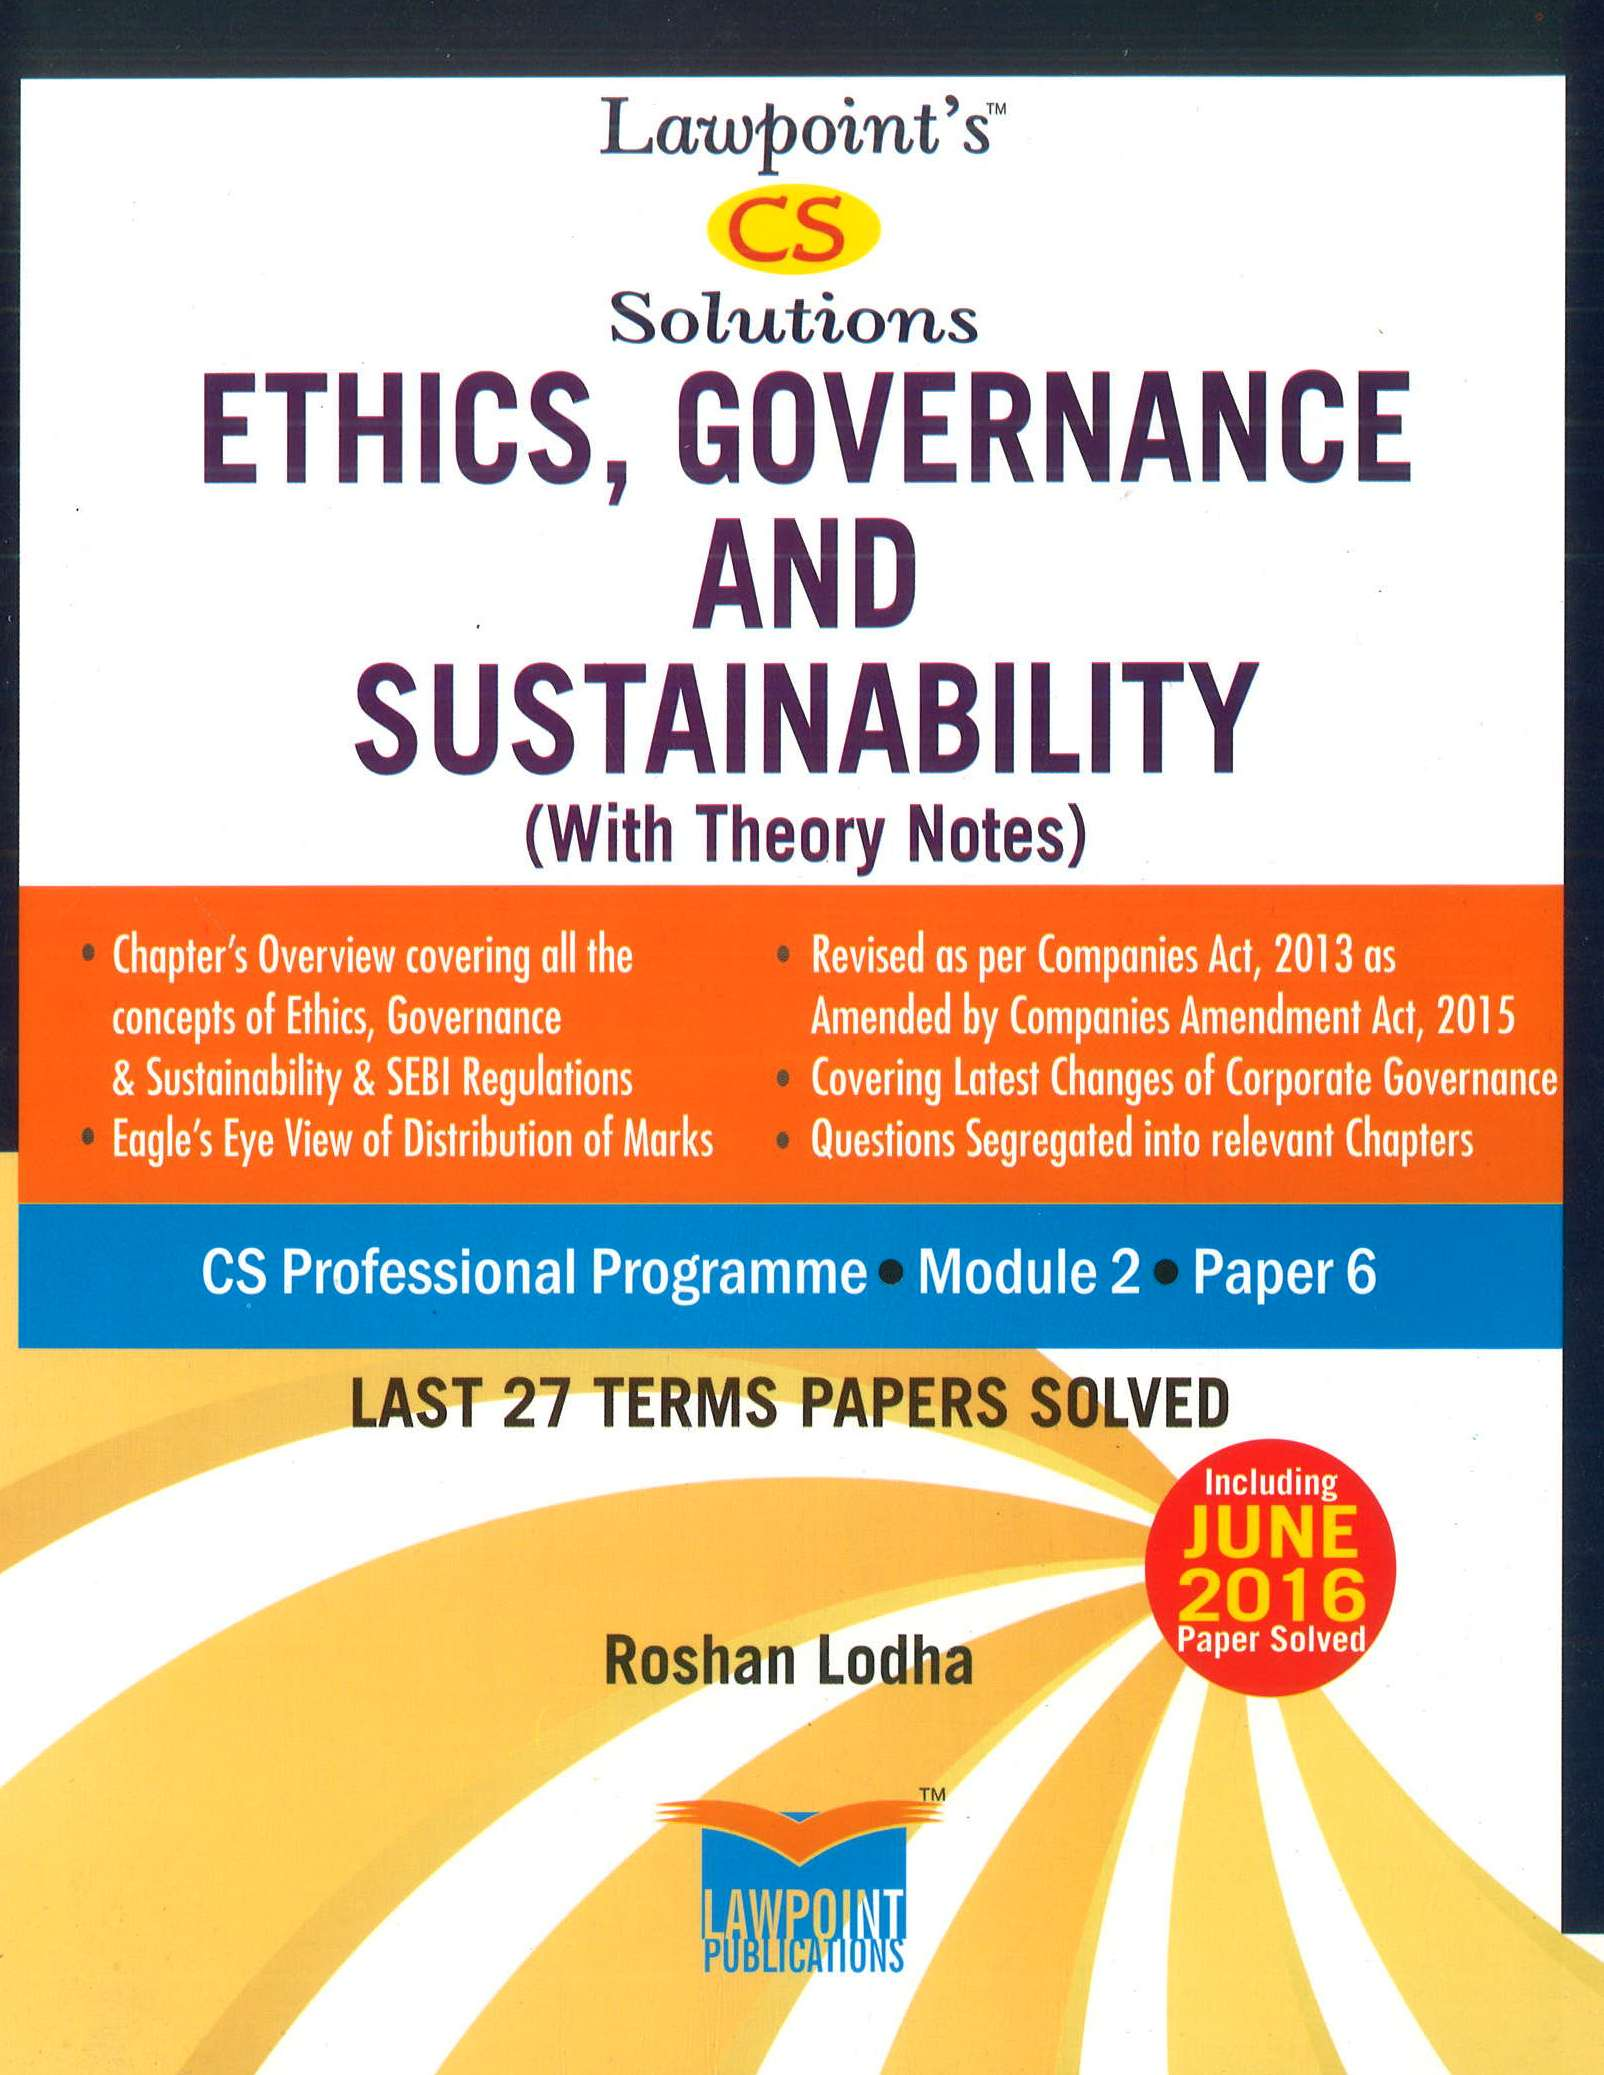 Lawpoint CS Solution Ethics, Governance and Sustainability (With Theory Notes) for CS Professional Programme Module-2 Paper-6 by Roshan Lodha (Lawpoint Publication) Edition 7th 2016